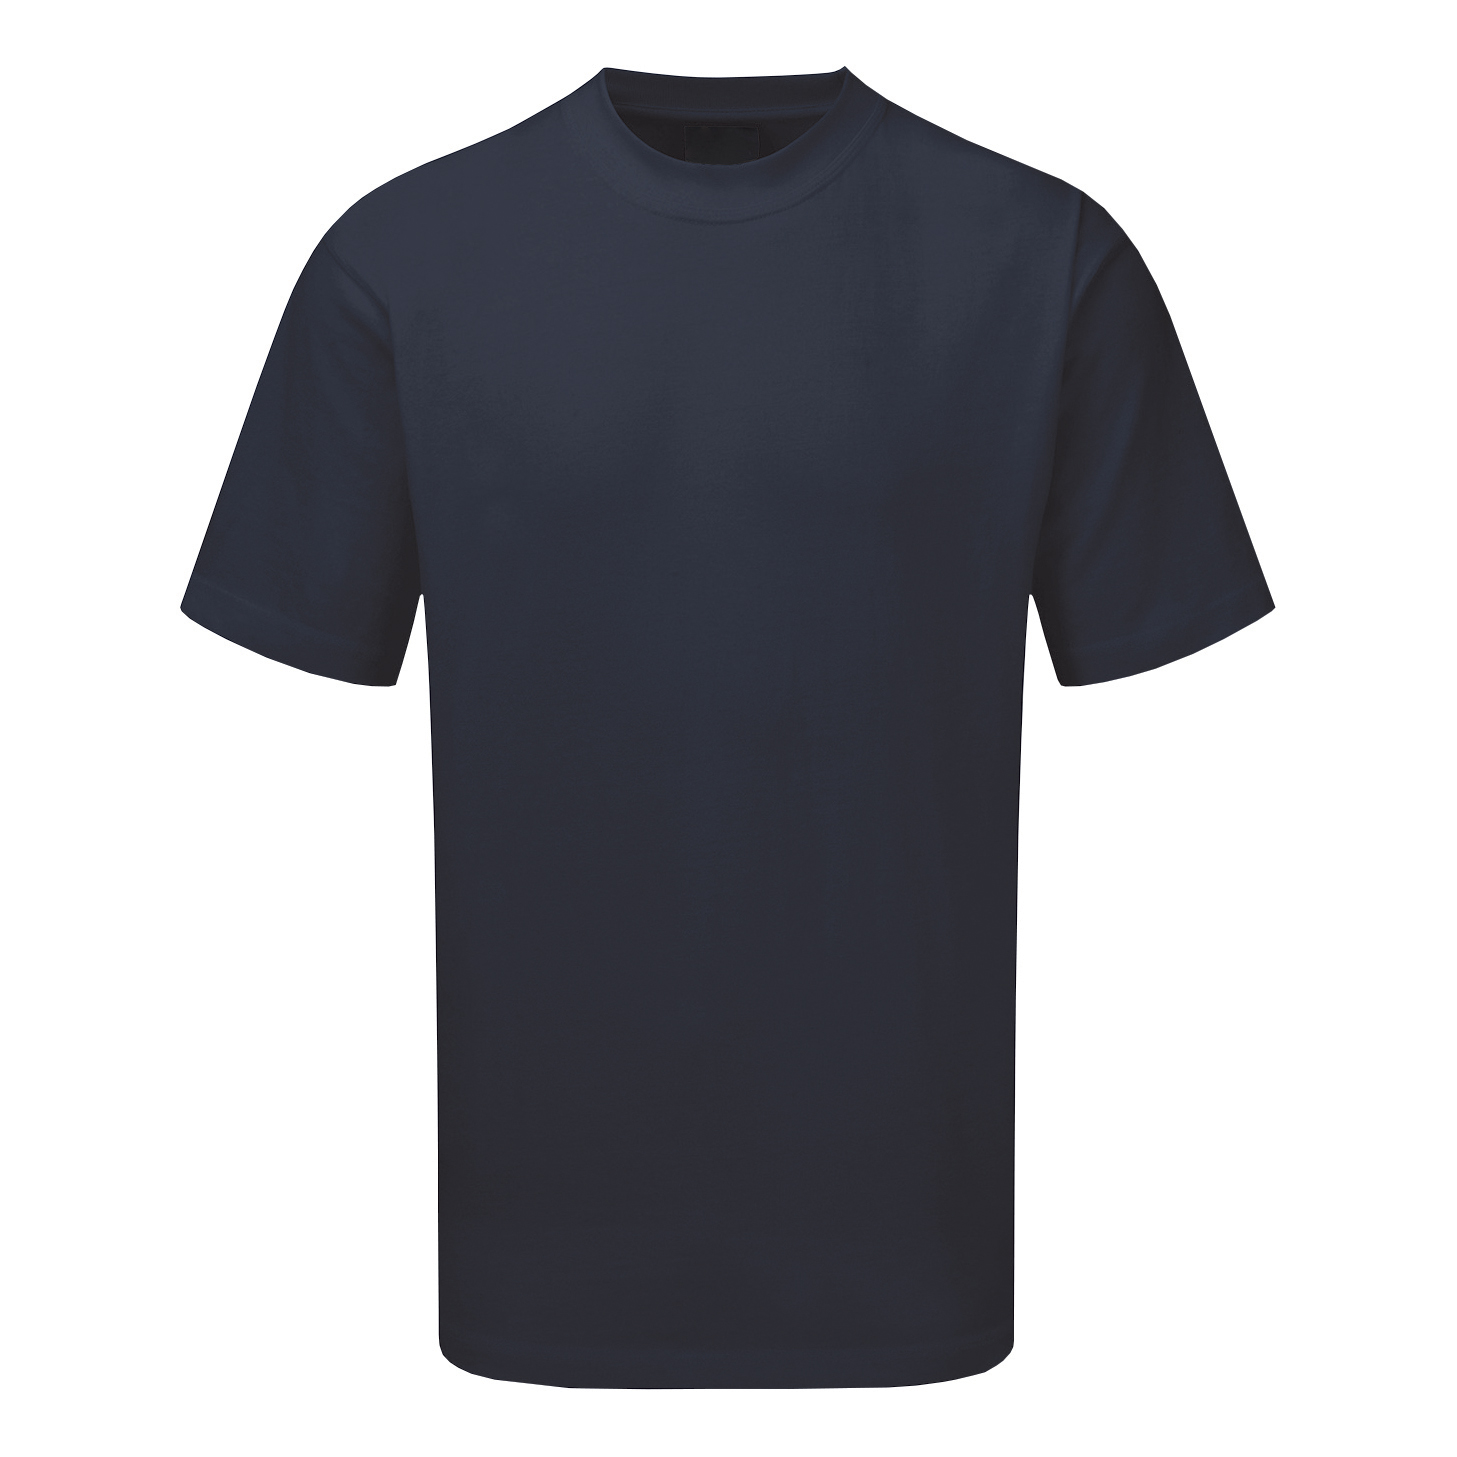 Premium T-Shirt Polycotton Triple Stitched Size XS Navy